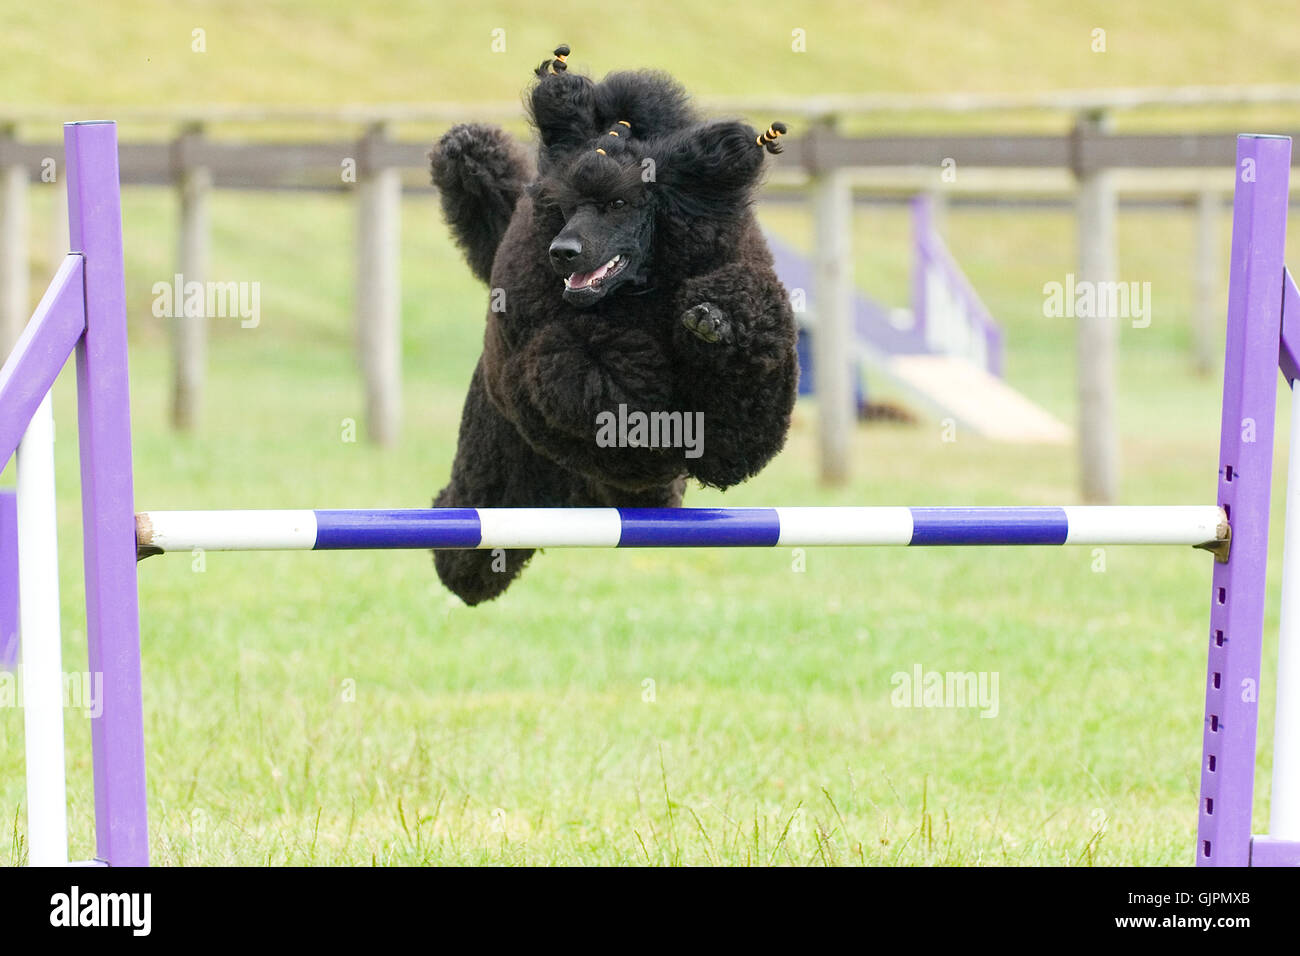 standard poodle doing agility jumping - Stock Image